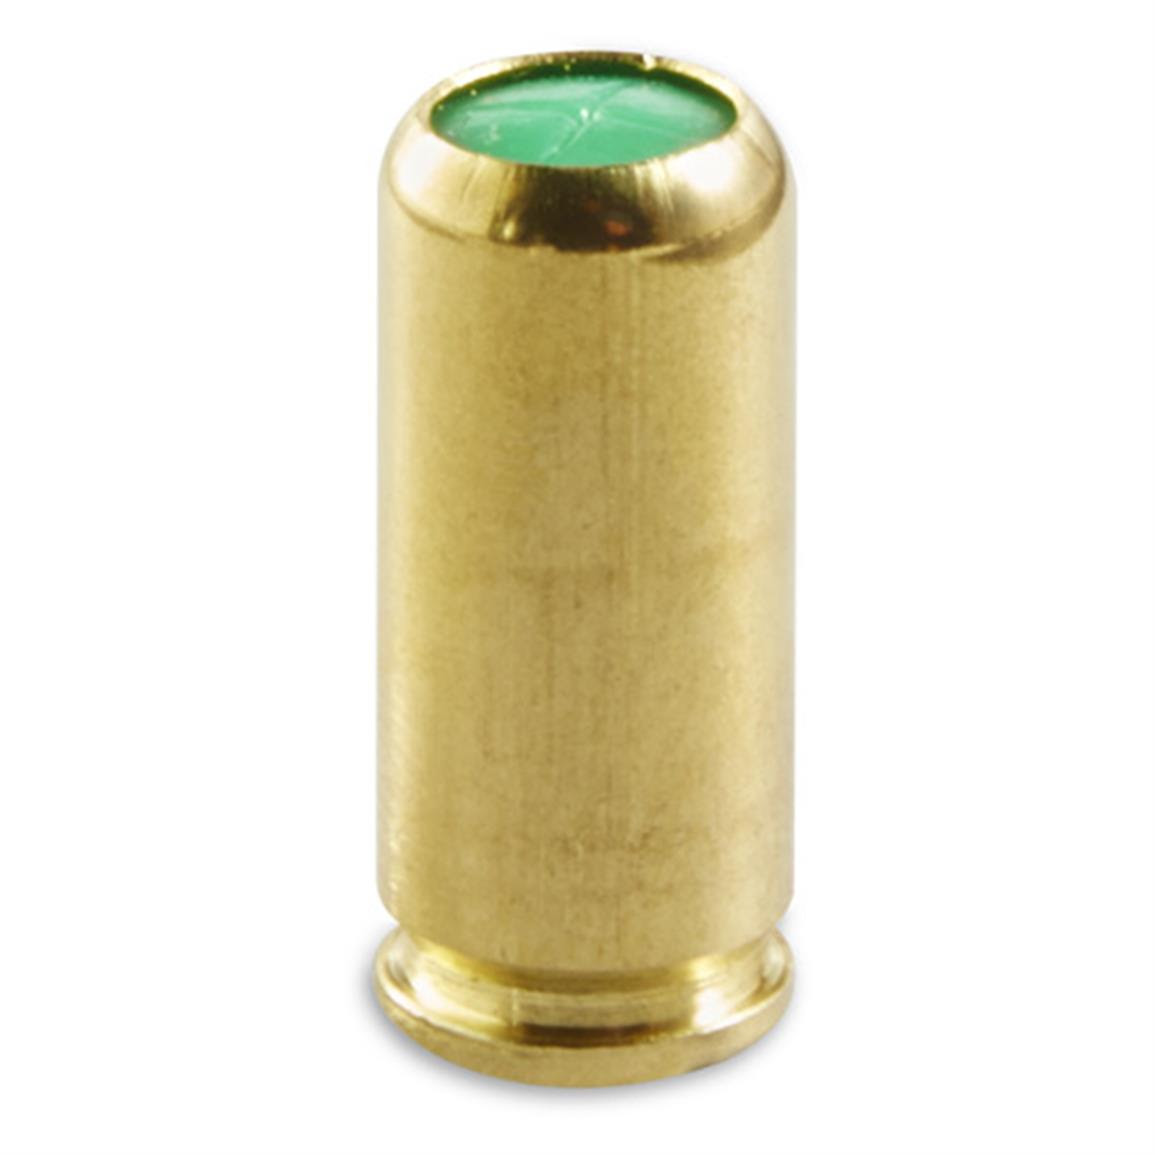 50 rounds 9mm P.A.K. Blank Gun Ammo - 100142, 9mm Ammo at ...